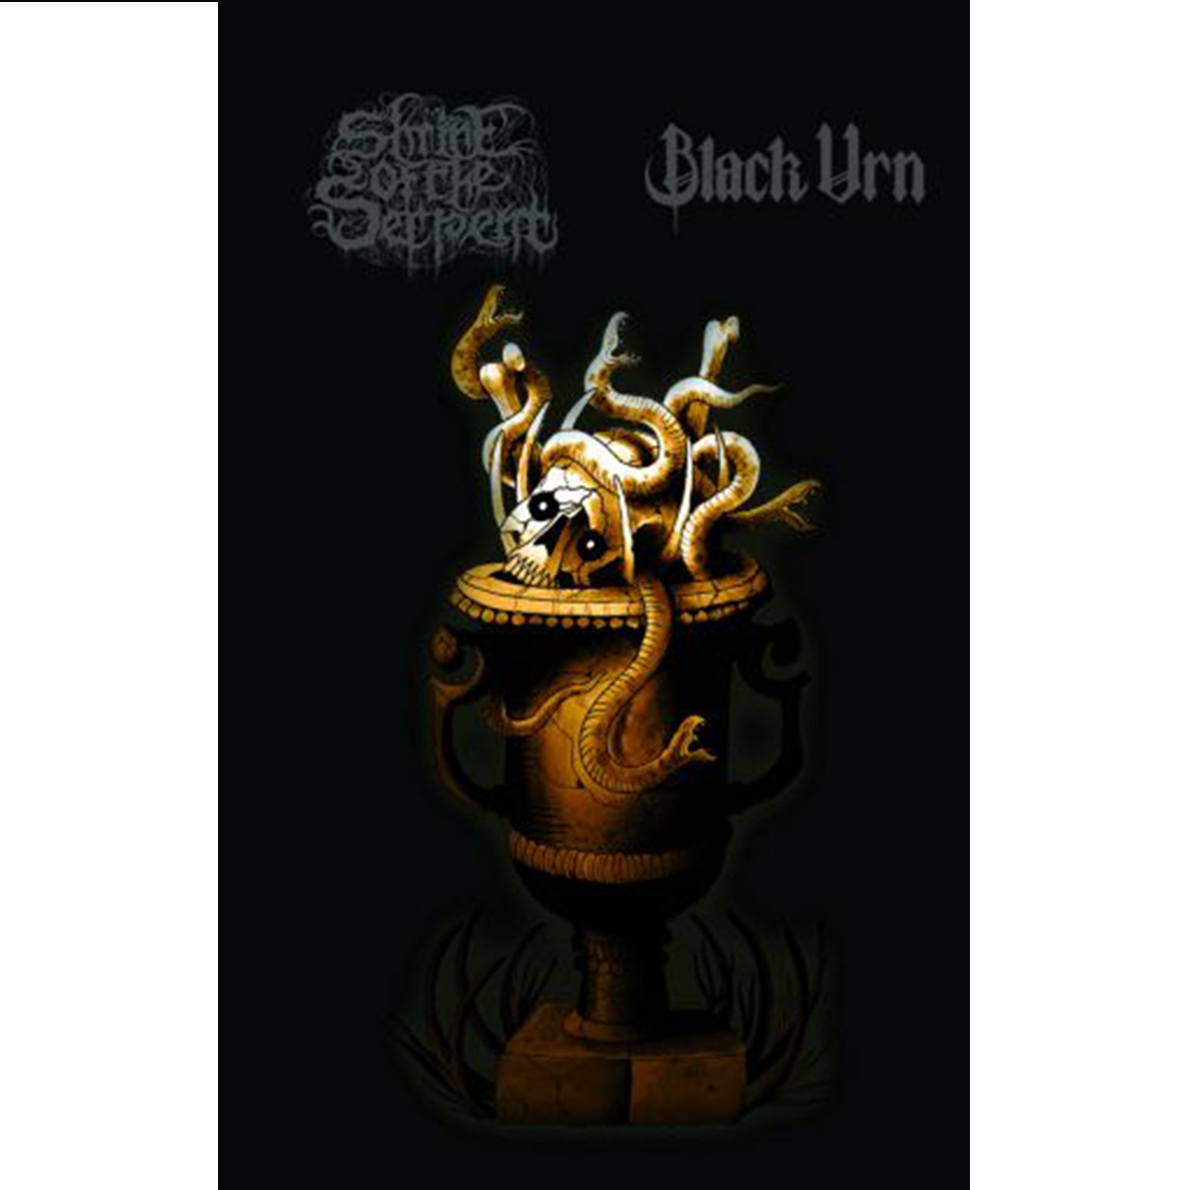 SHRINE OF THE SERPENT / BLACK URN - Shrine of the Serpent / Black Urn